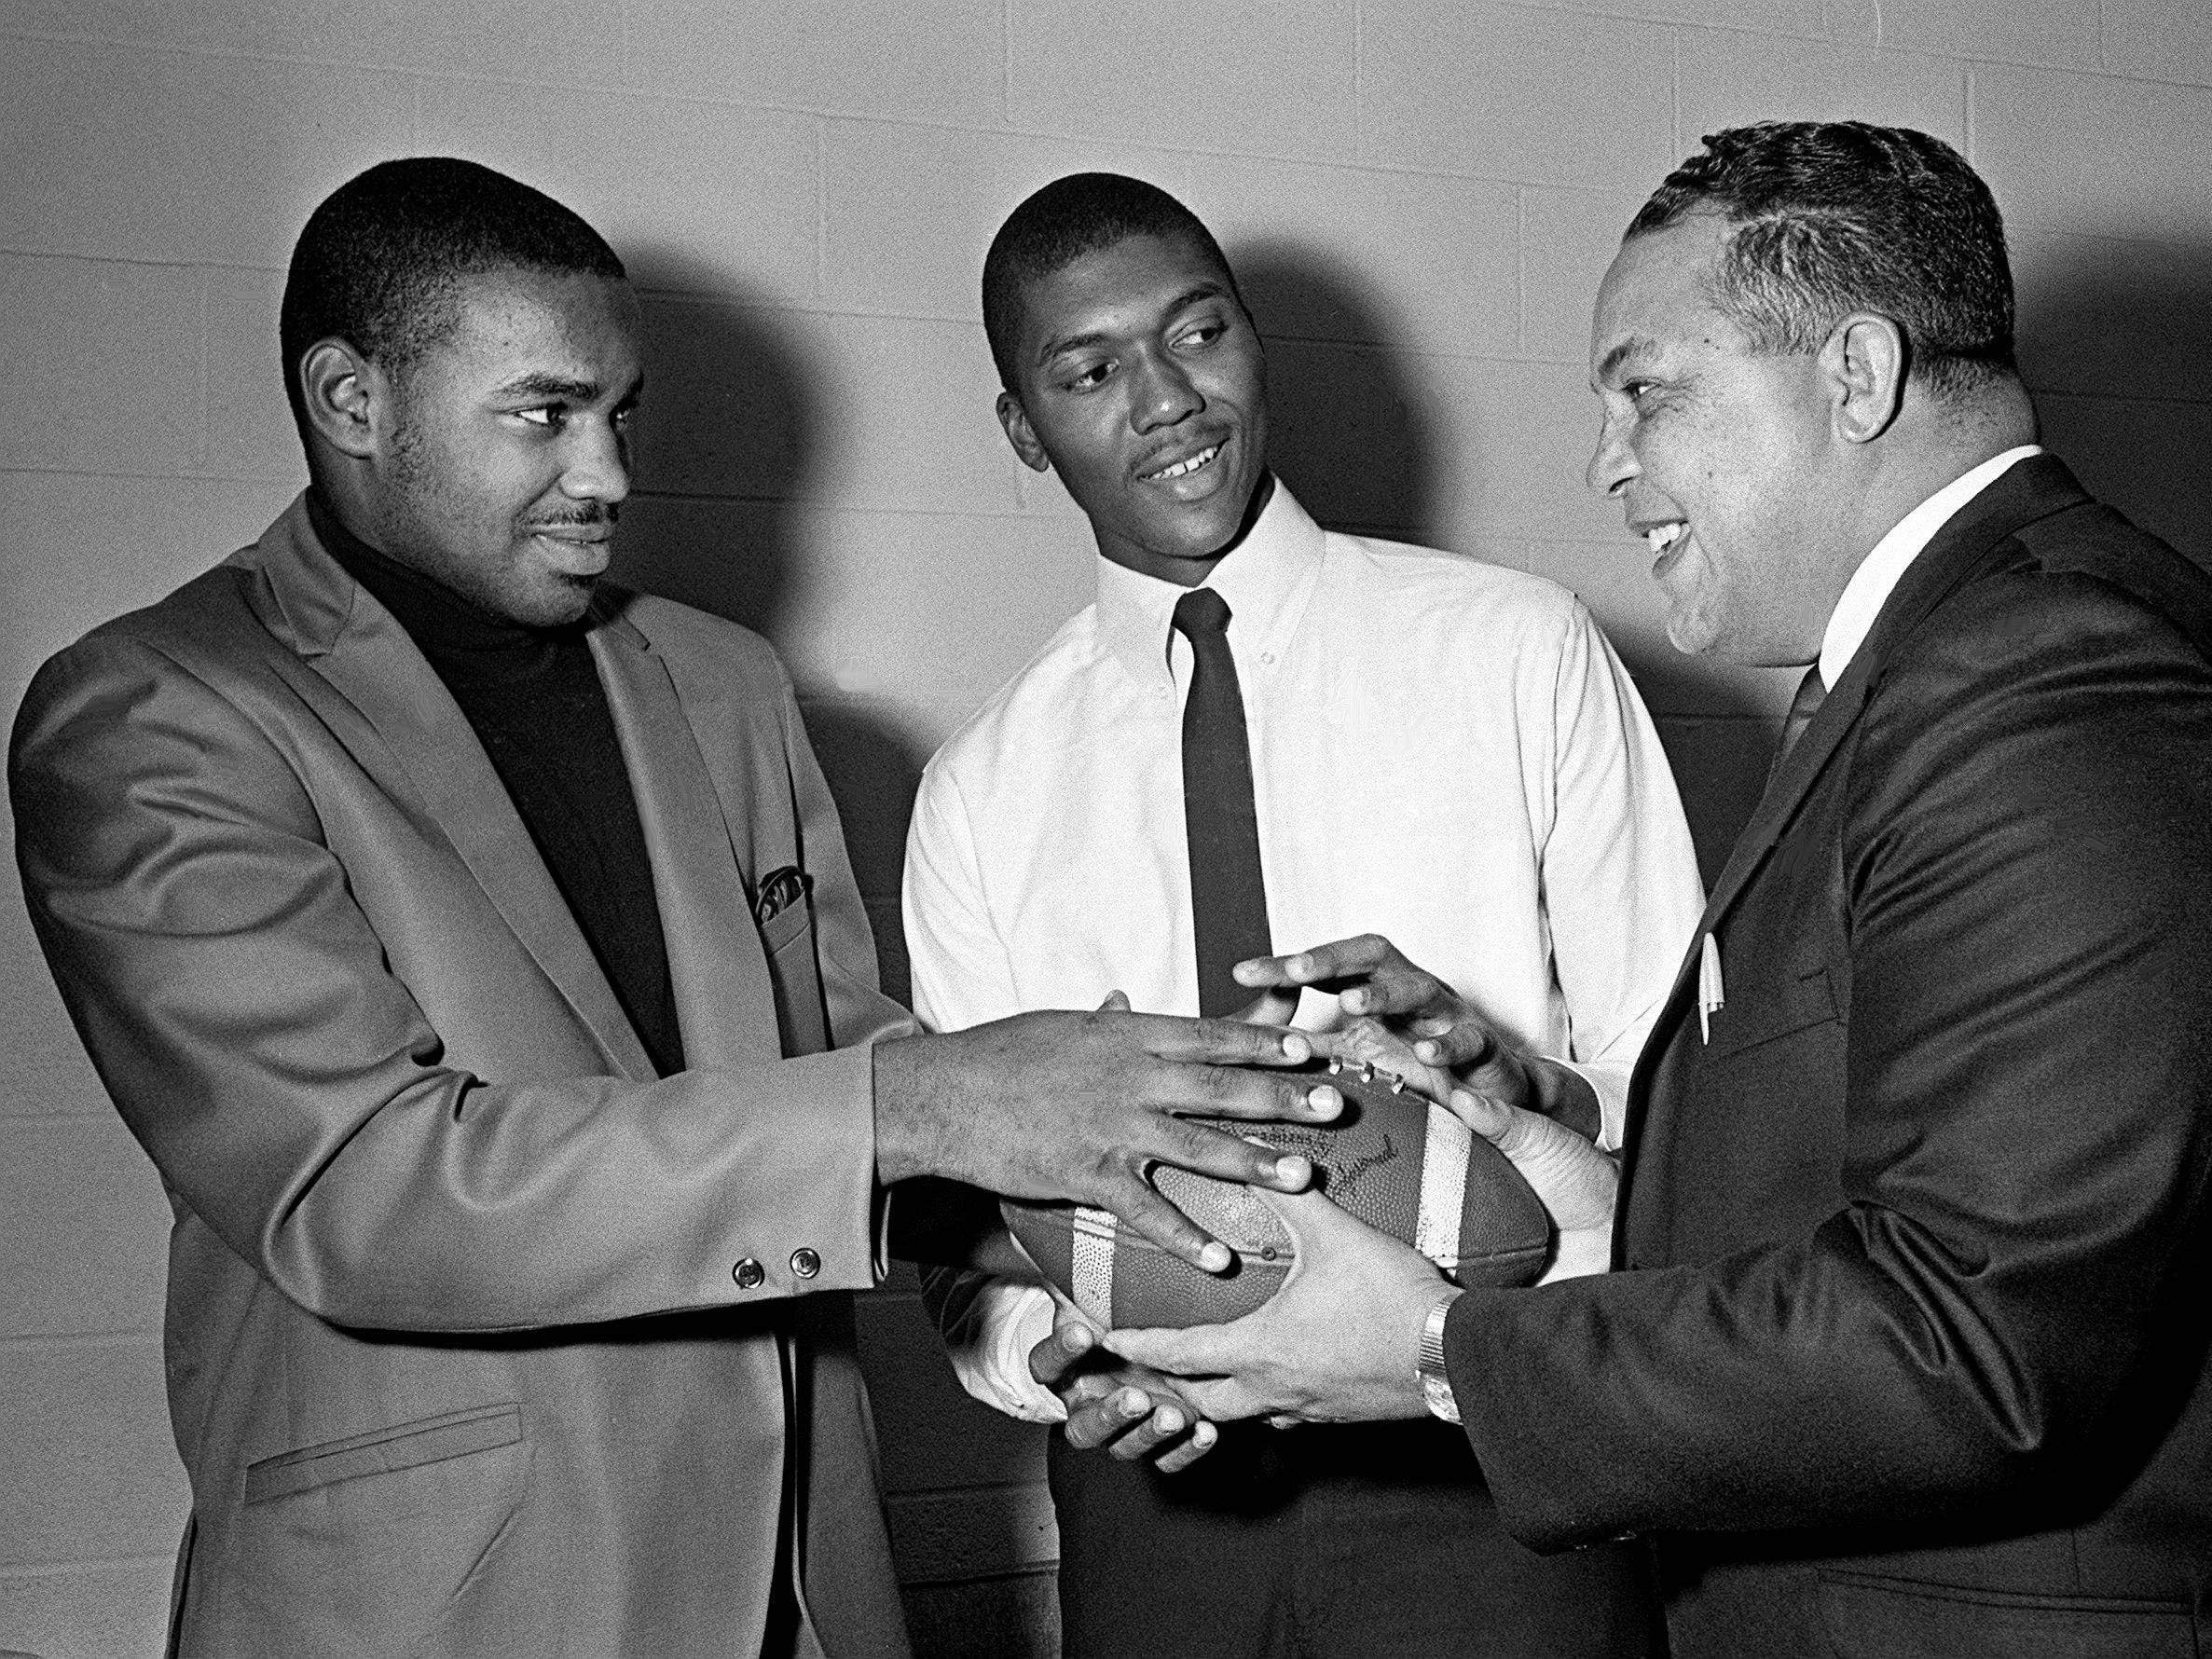 Tennessee A&I State coach John Merritt, right, hands off to a pair of his newest signees, Cameron High stars Shawney Wynn, left, and Aaron Bostick, on Dec. 16, 1968.